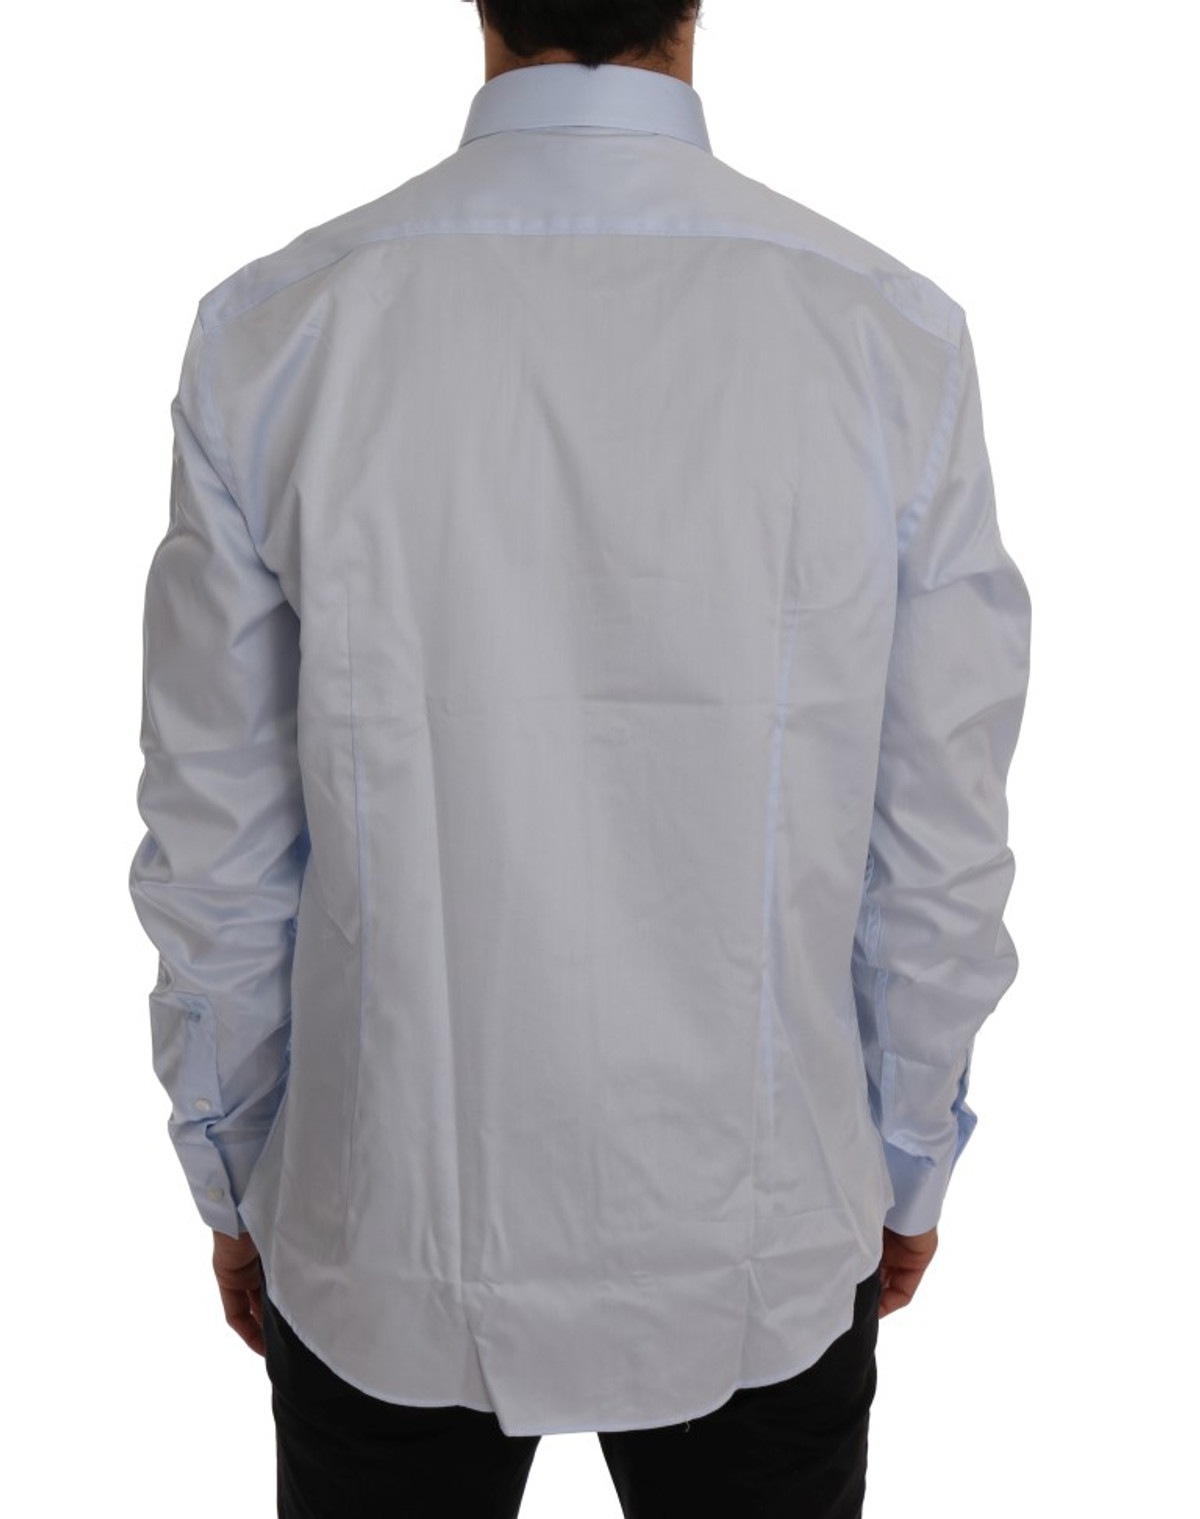 Dress Shirt in Light Blue